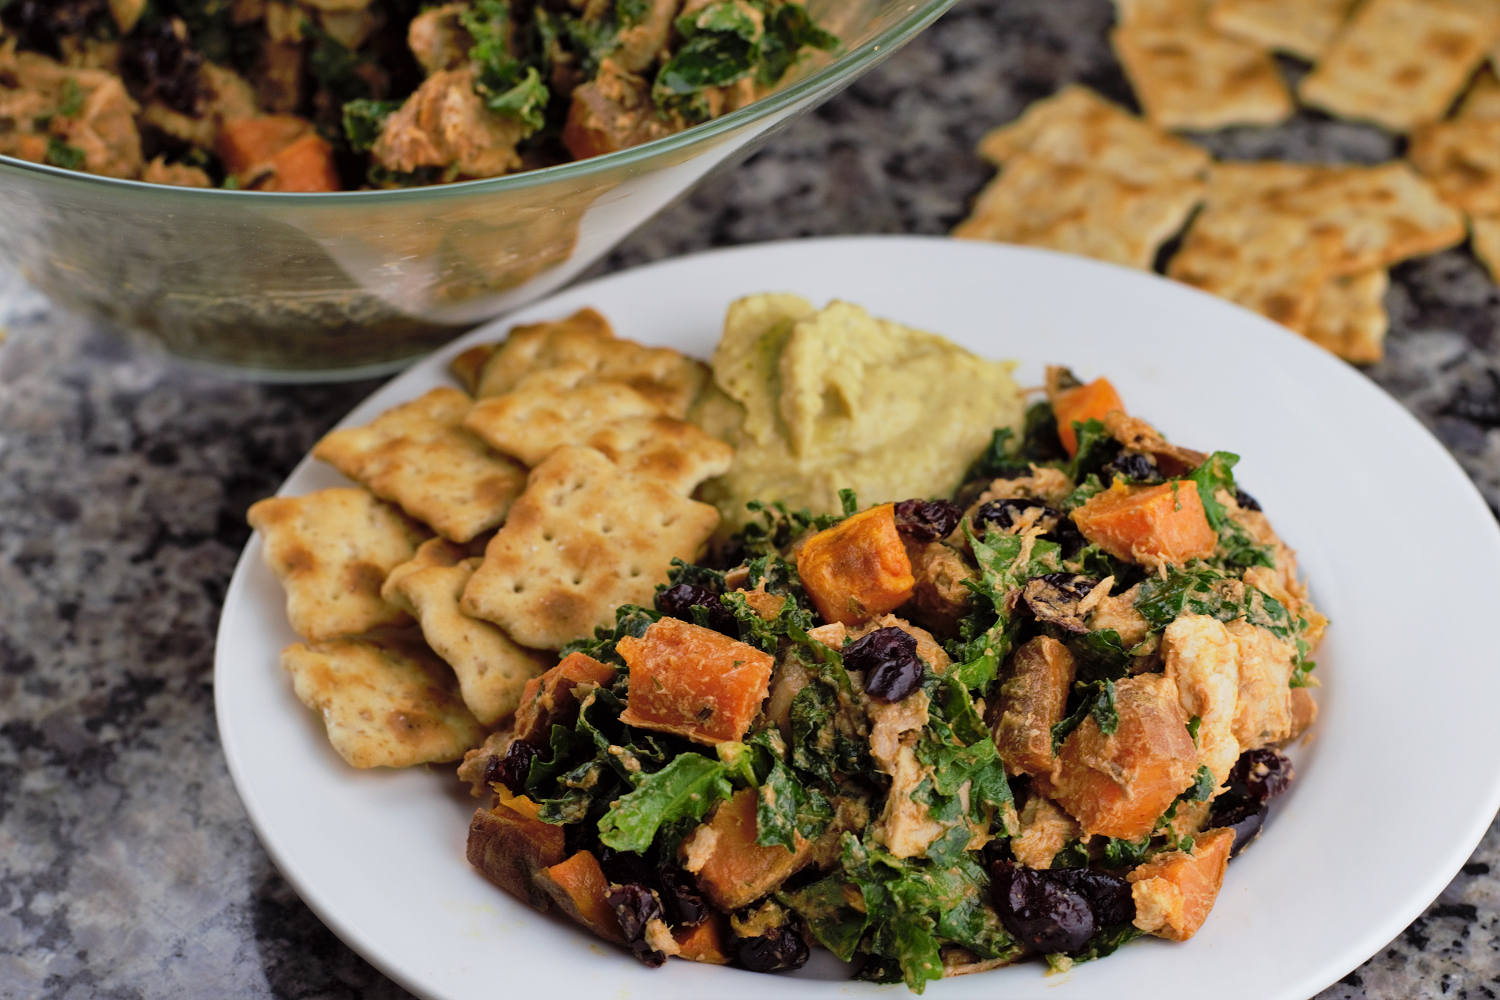 Kale Salad With Chicken And Sweet Potato Recipe — Dishmaps